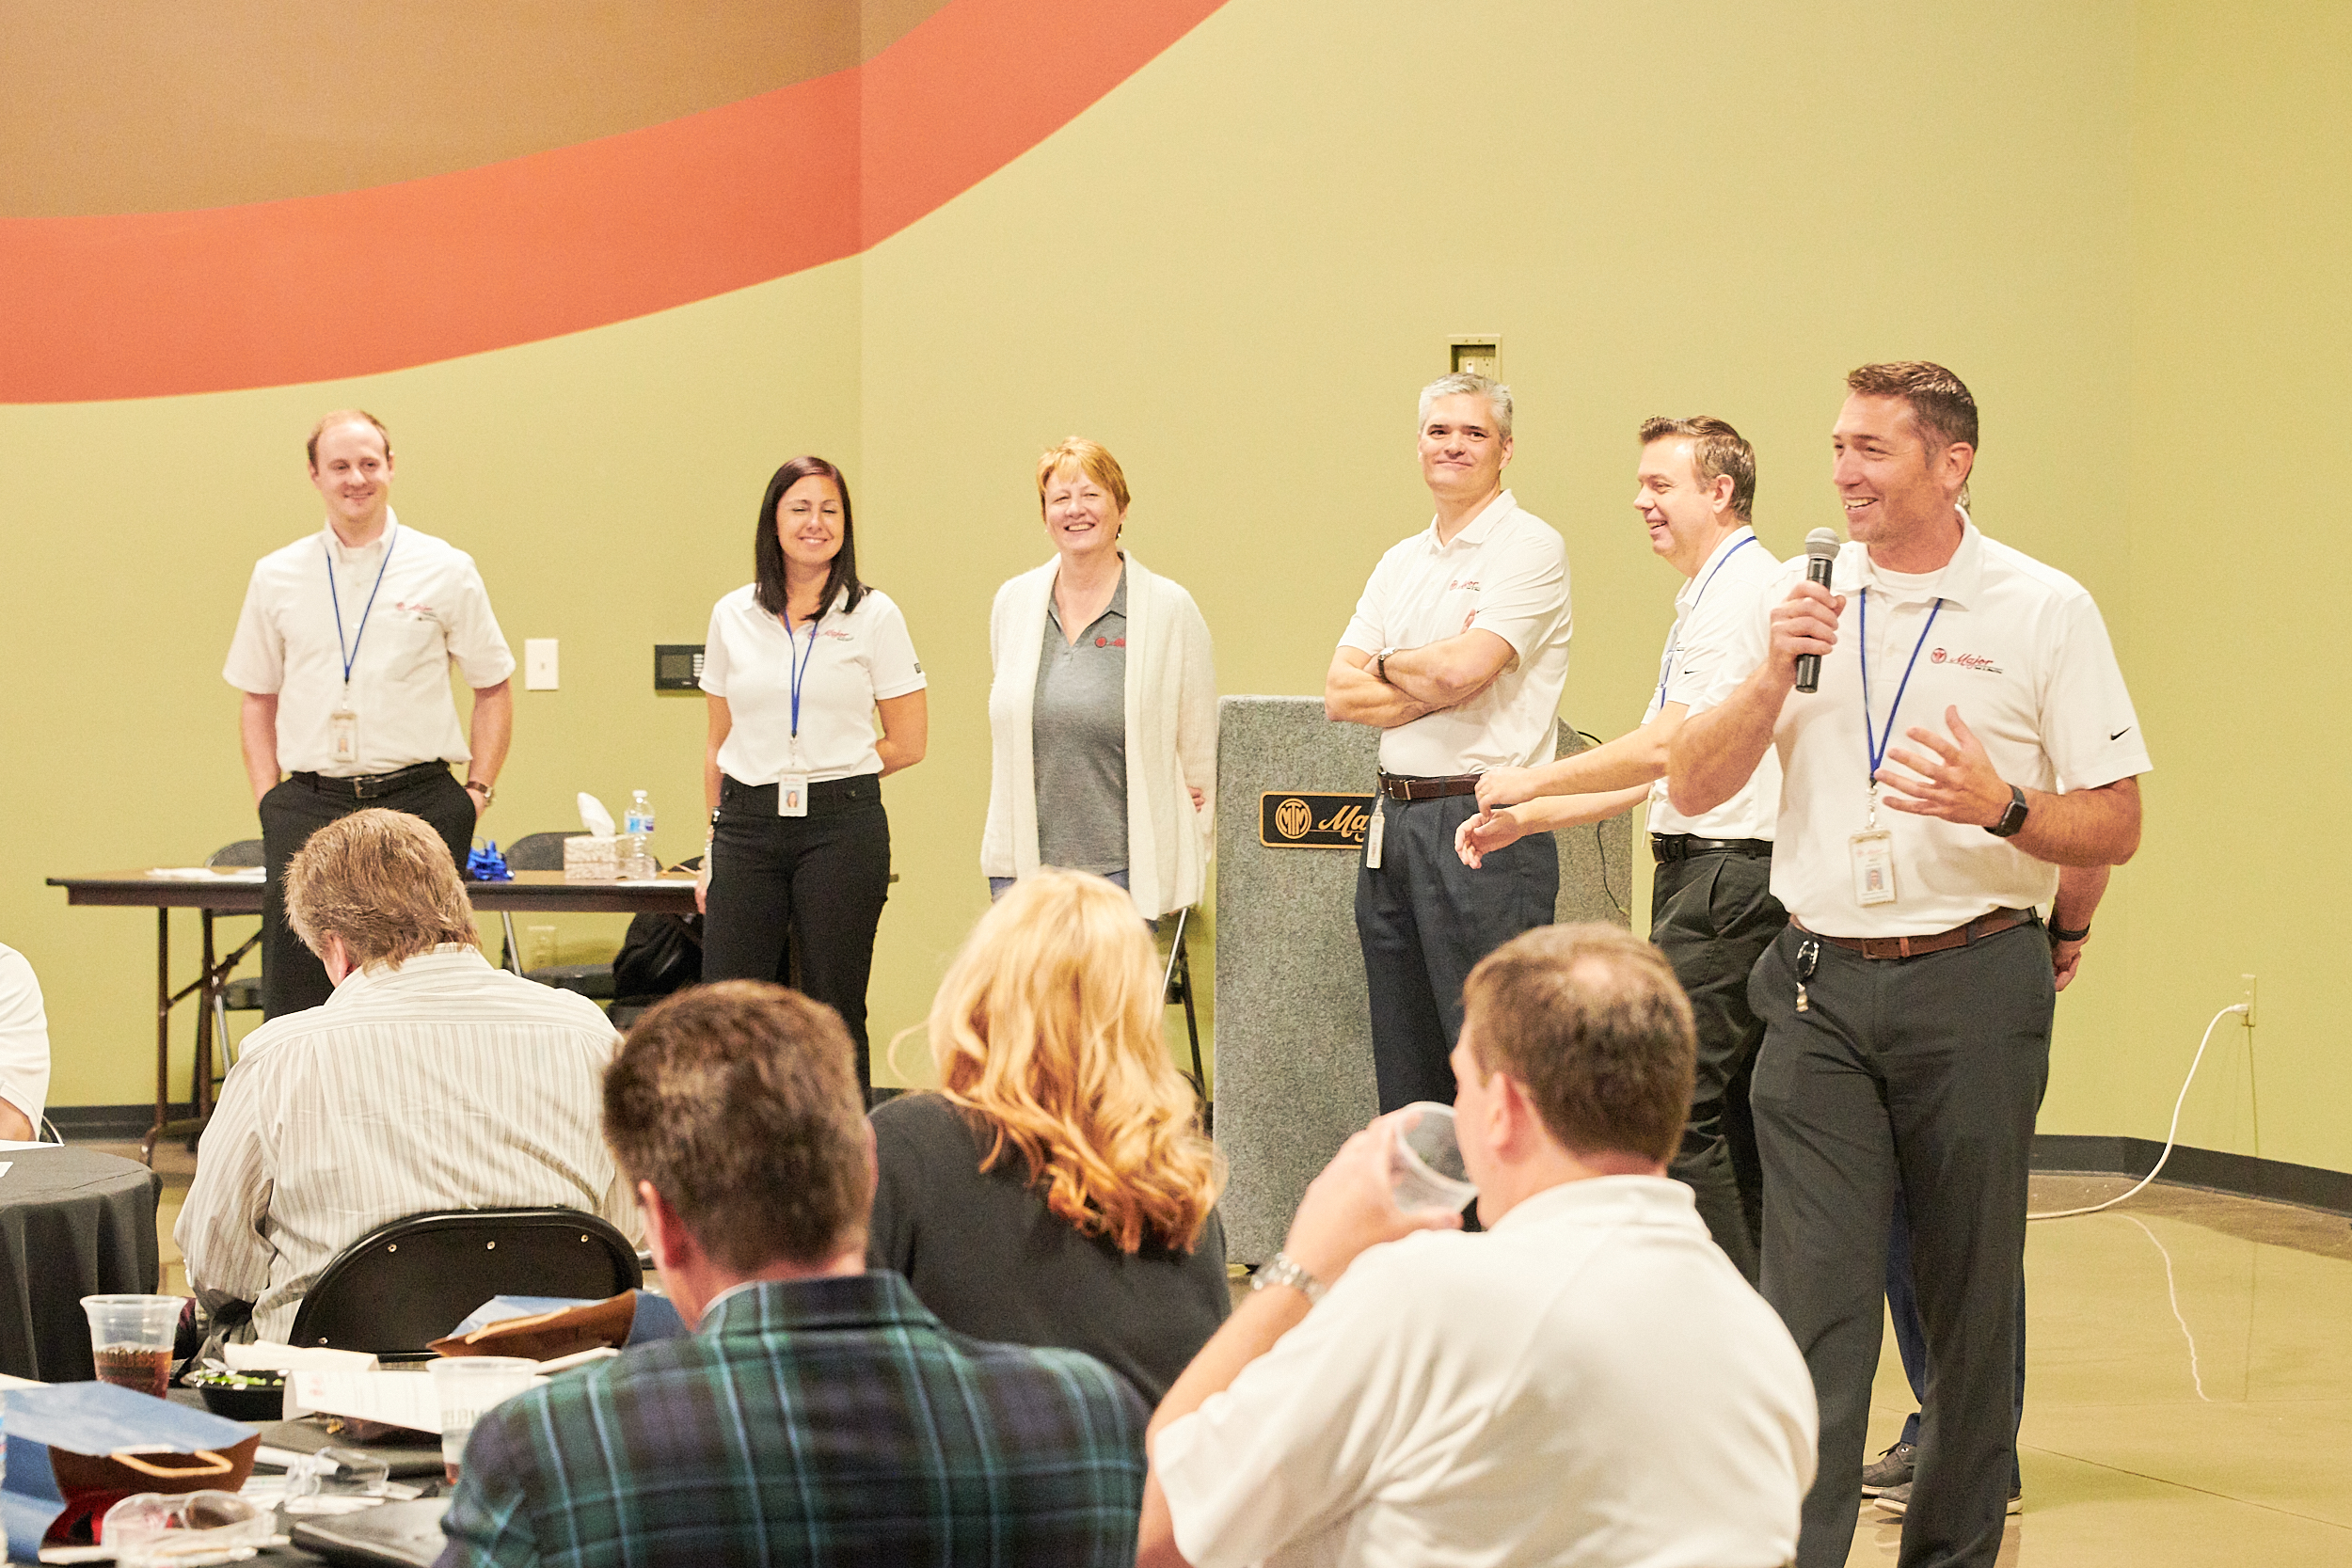 20190515 Supplier Conference - Tim Schumm Photography 149.jpg